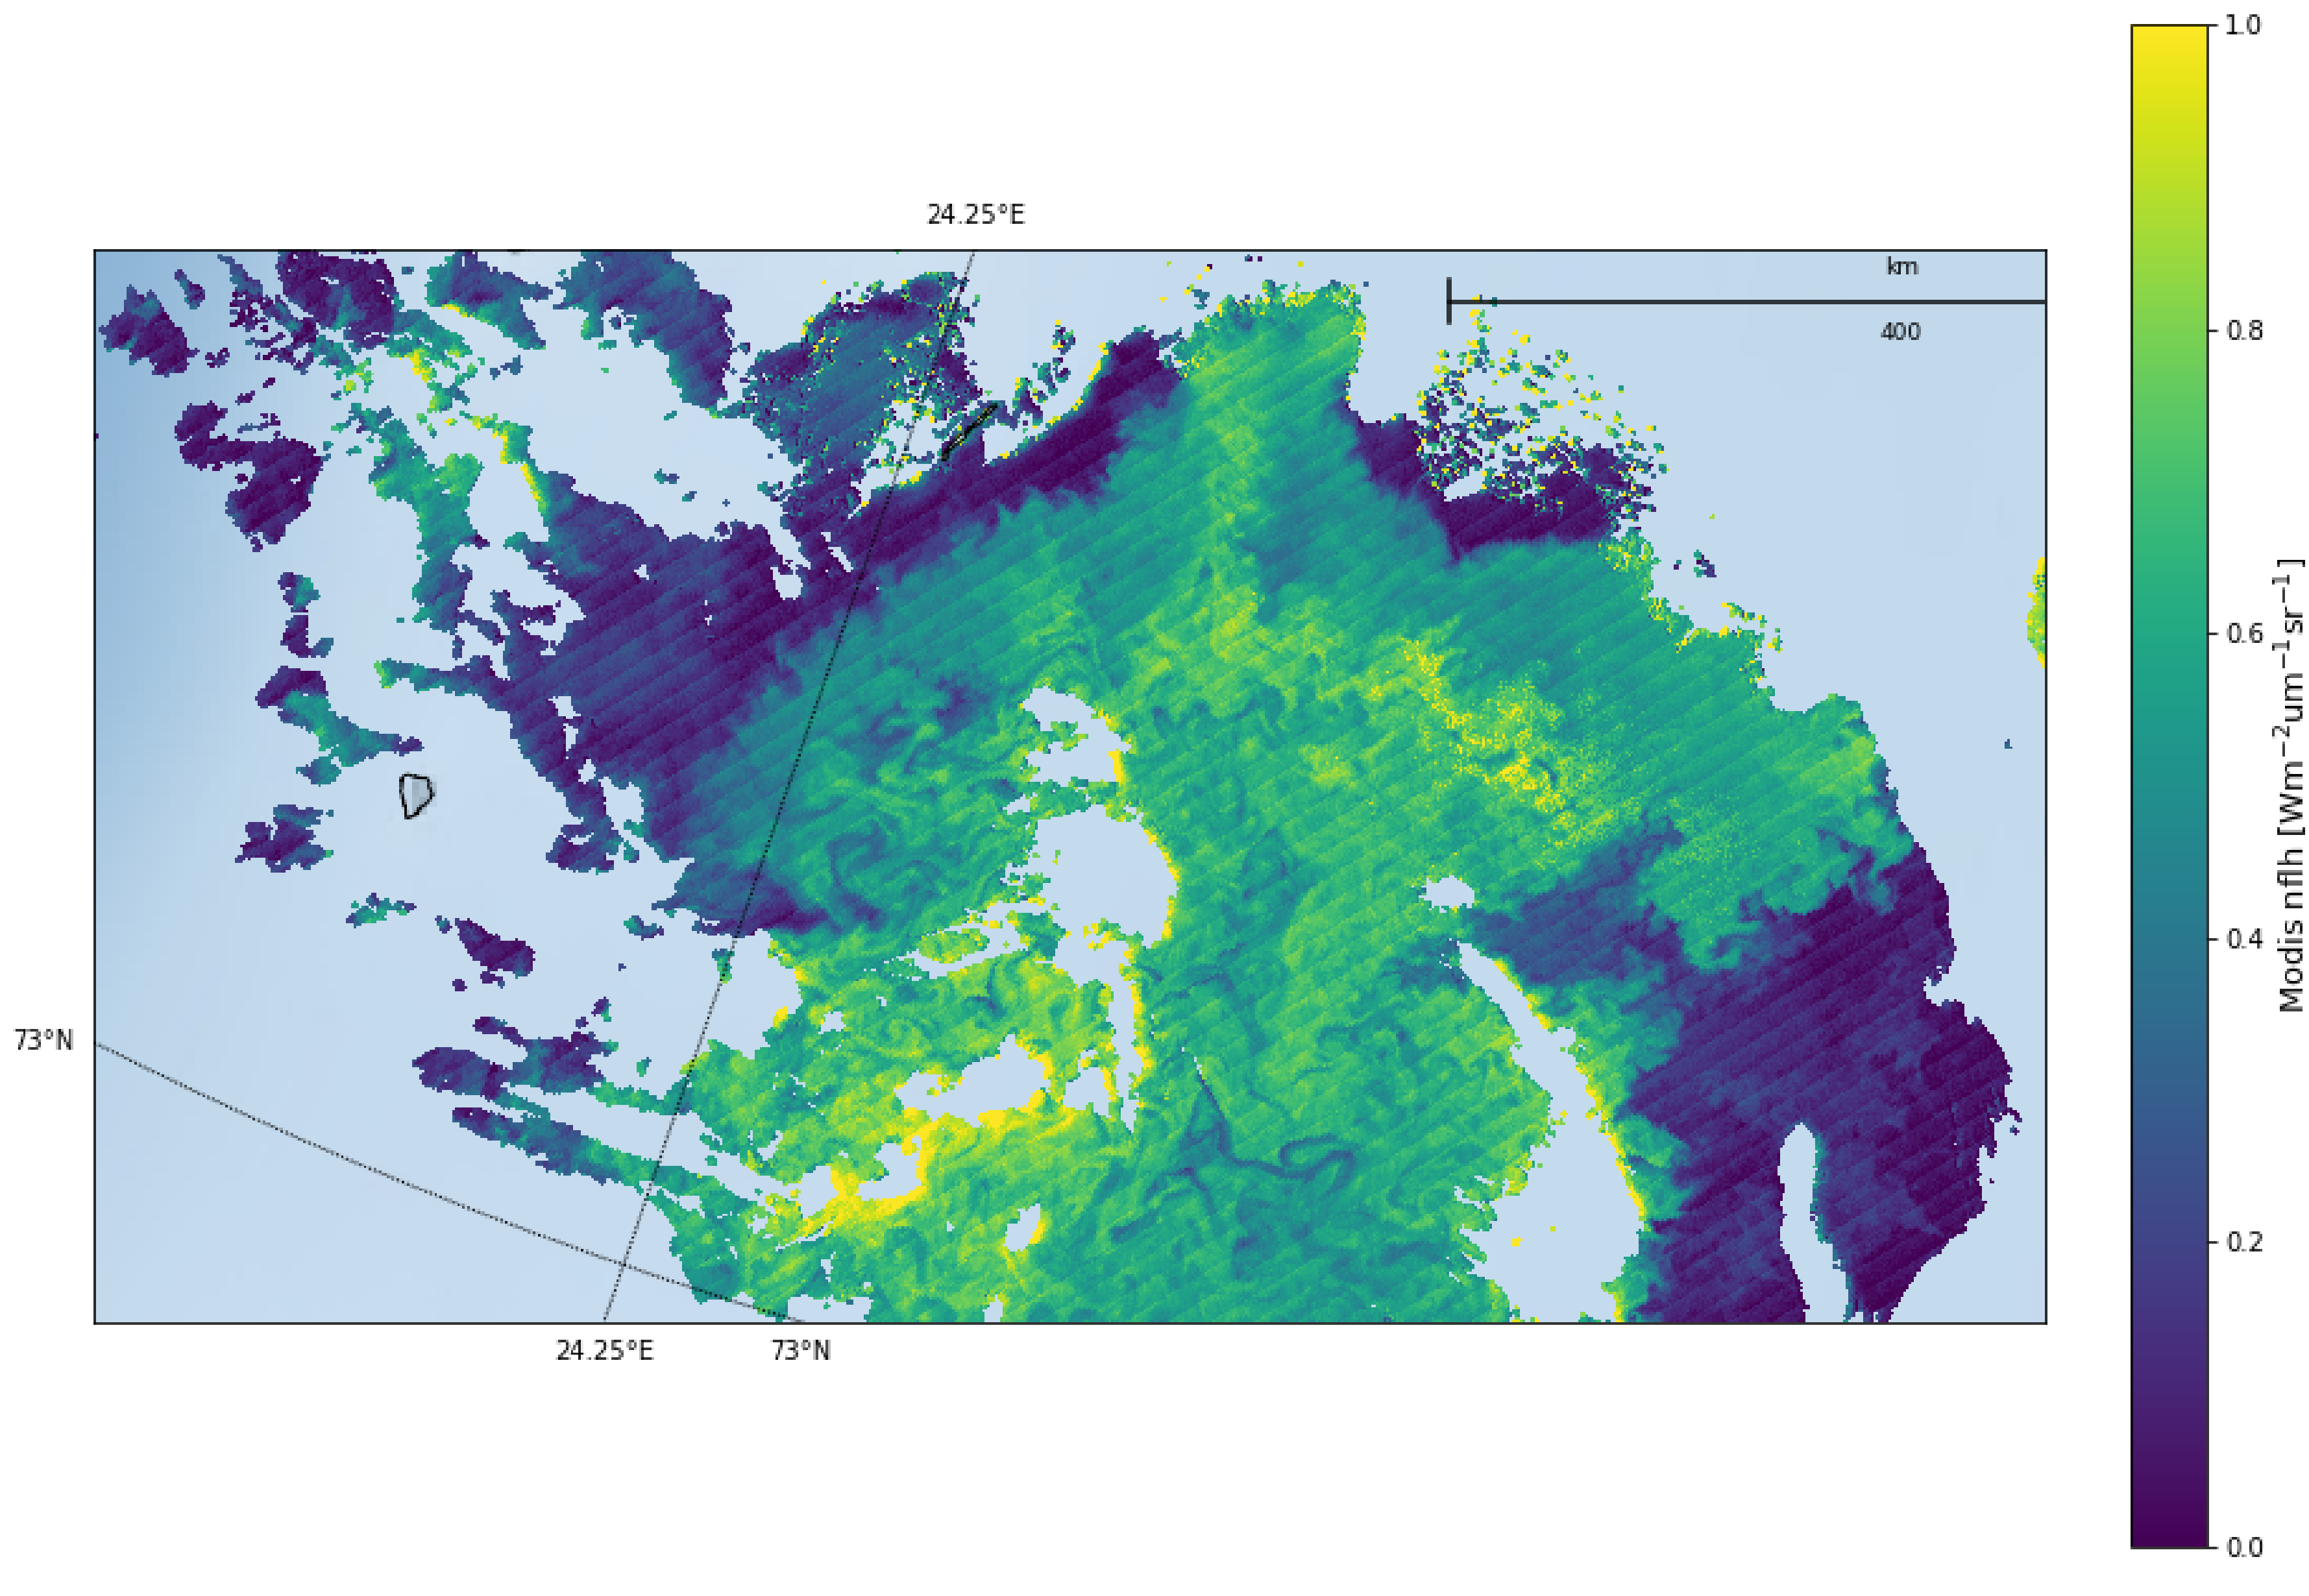 Figure 7: MODIS nFLH on 5 July, 2018 in the Barents Sea